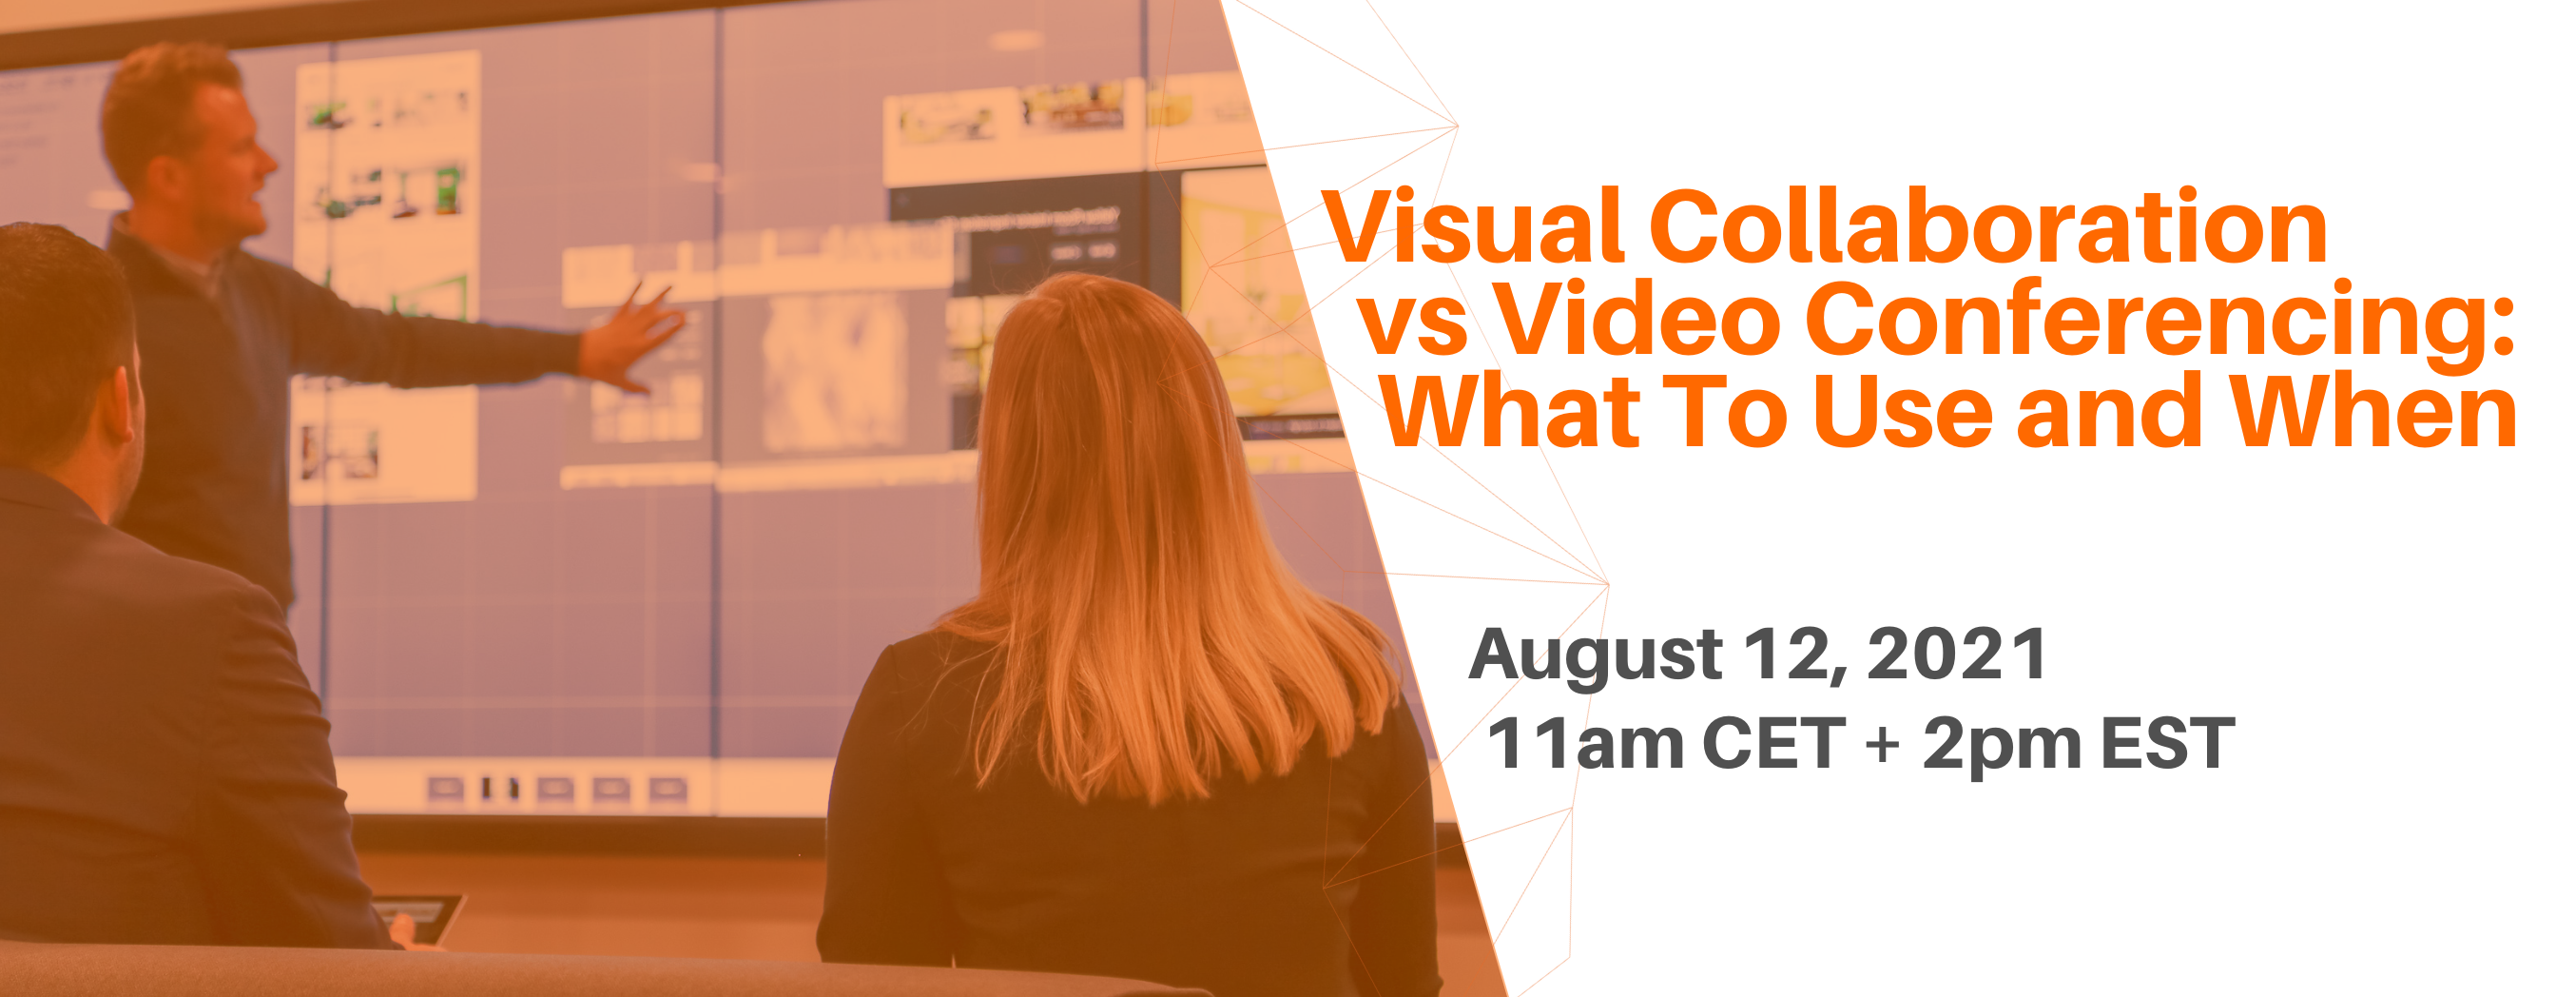 T1V-Visual-Collaboration-vs-Vide-Conferencing-What-To-Use-and-When-Webinar-08-12-21-Email